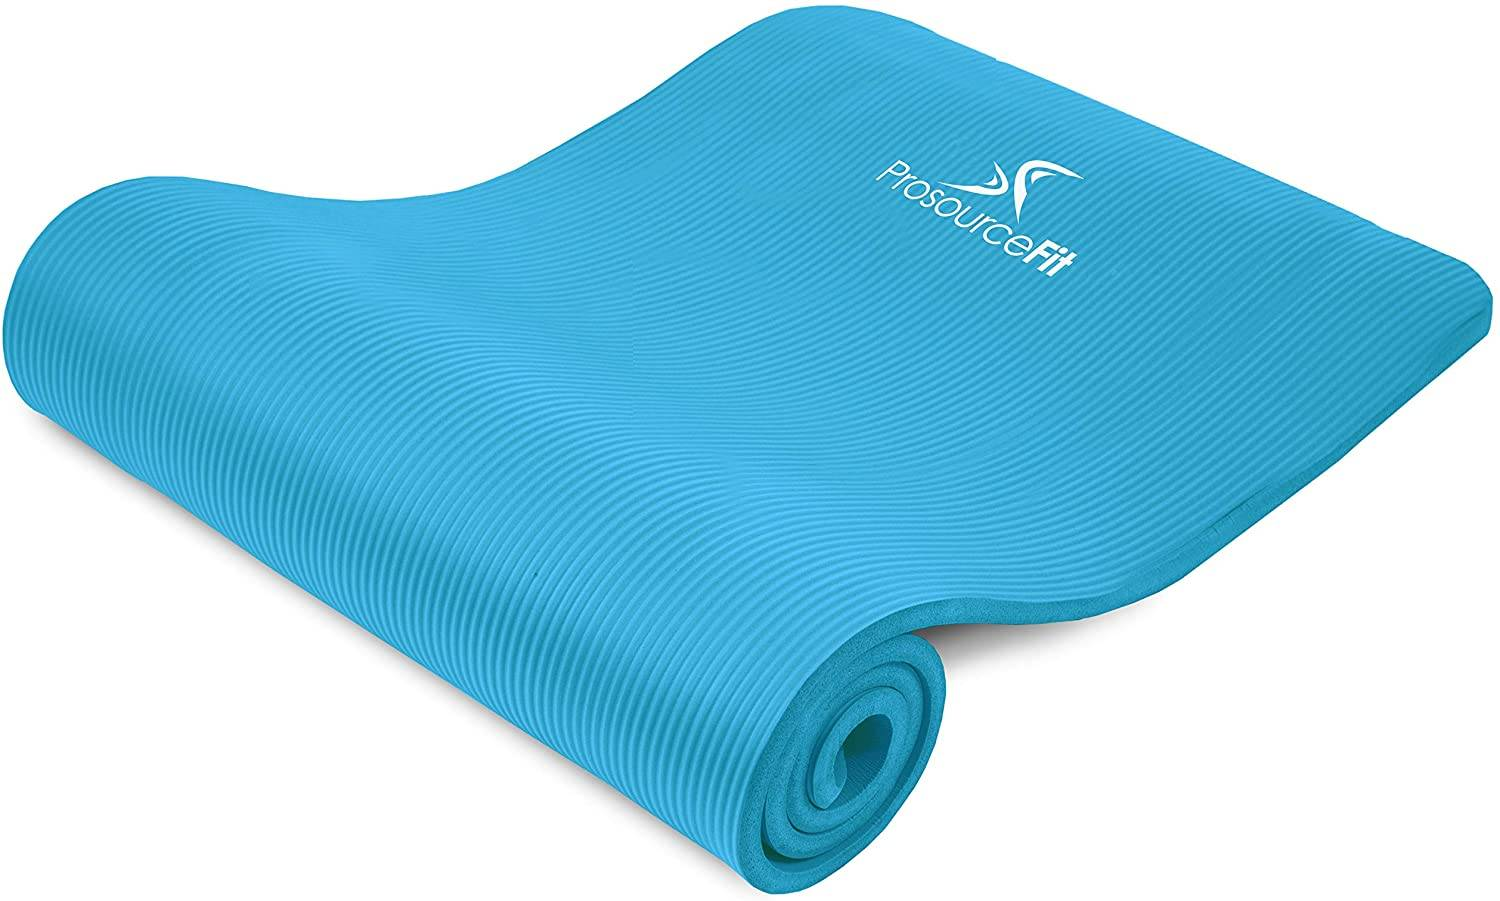 ProsourceFit Extra Thick Yoga Exercise Mat for Hard Floors